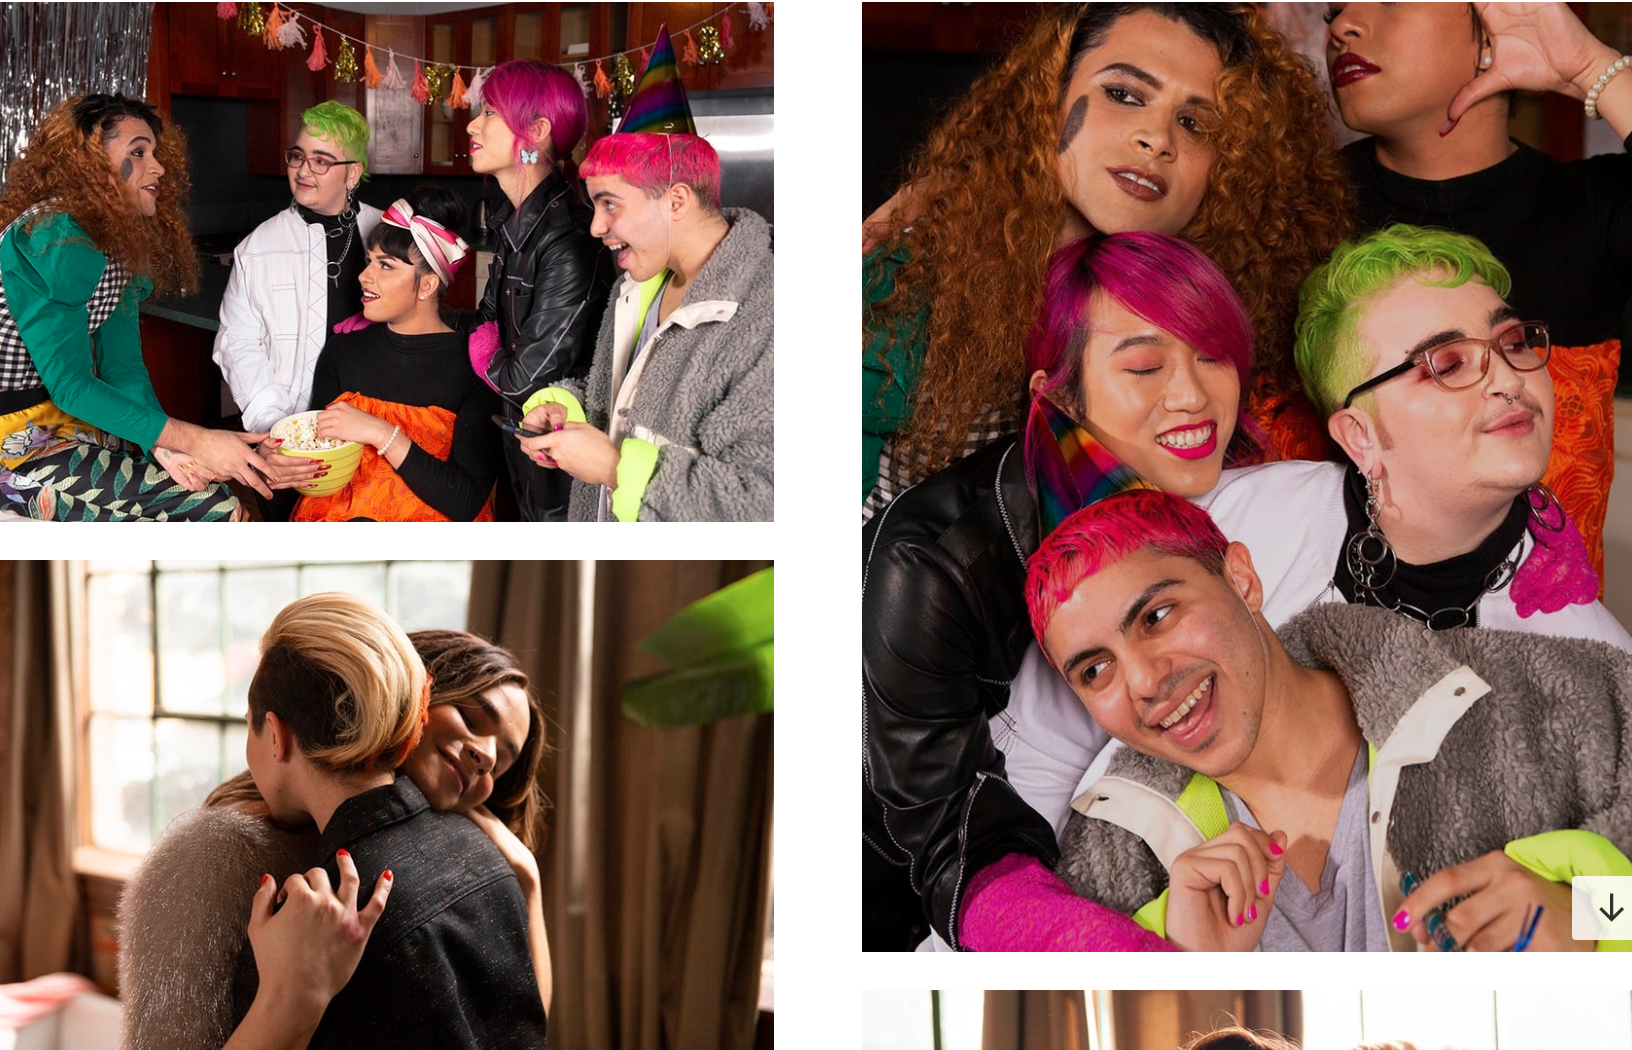 Example of stock photos from genderphotos.com of people of different genders hanging out with friends and embracing.